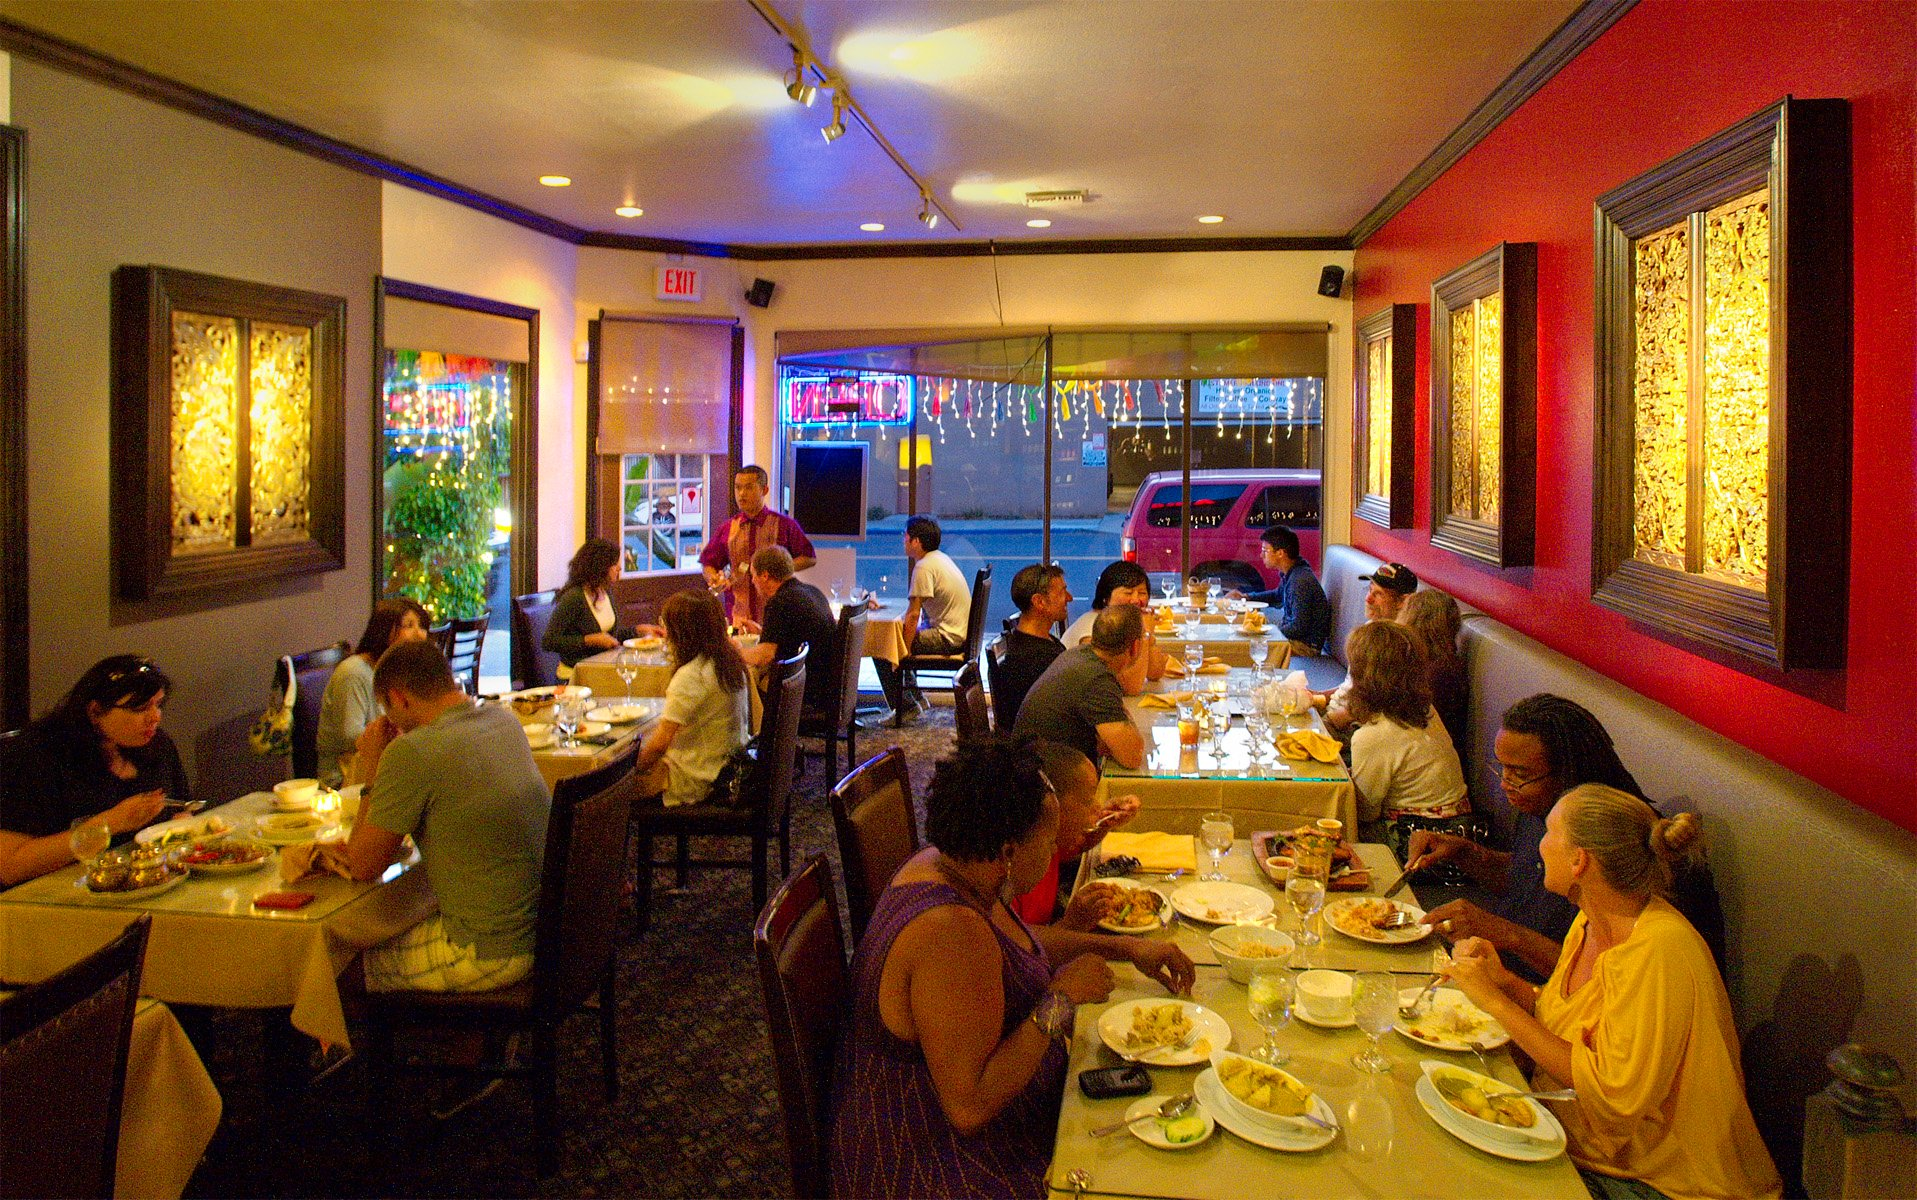 Dreams of a tropical lagoon san diego reader for Amarin thai cuisine san jose